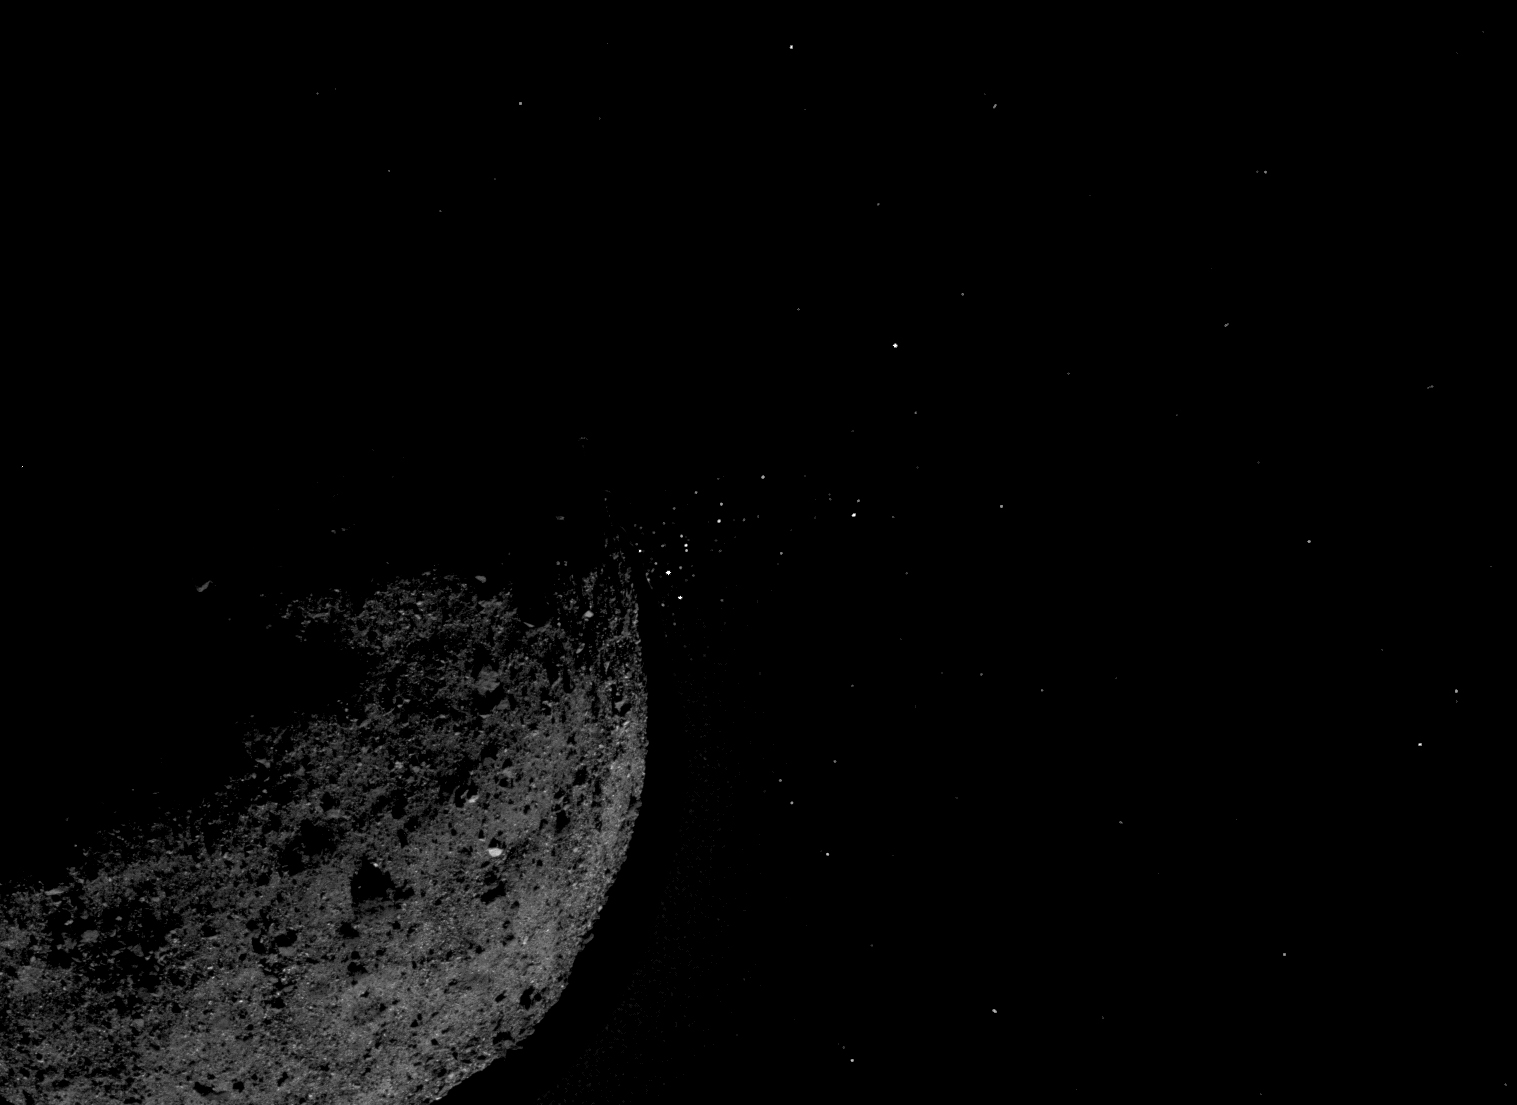 rocky asteroid ejecting small particles into space